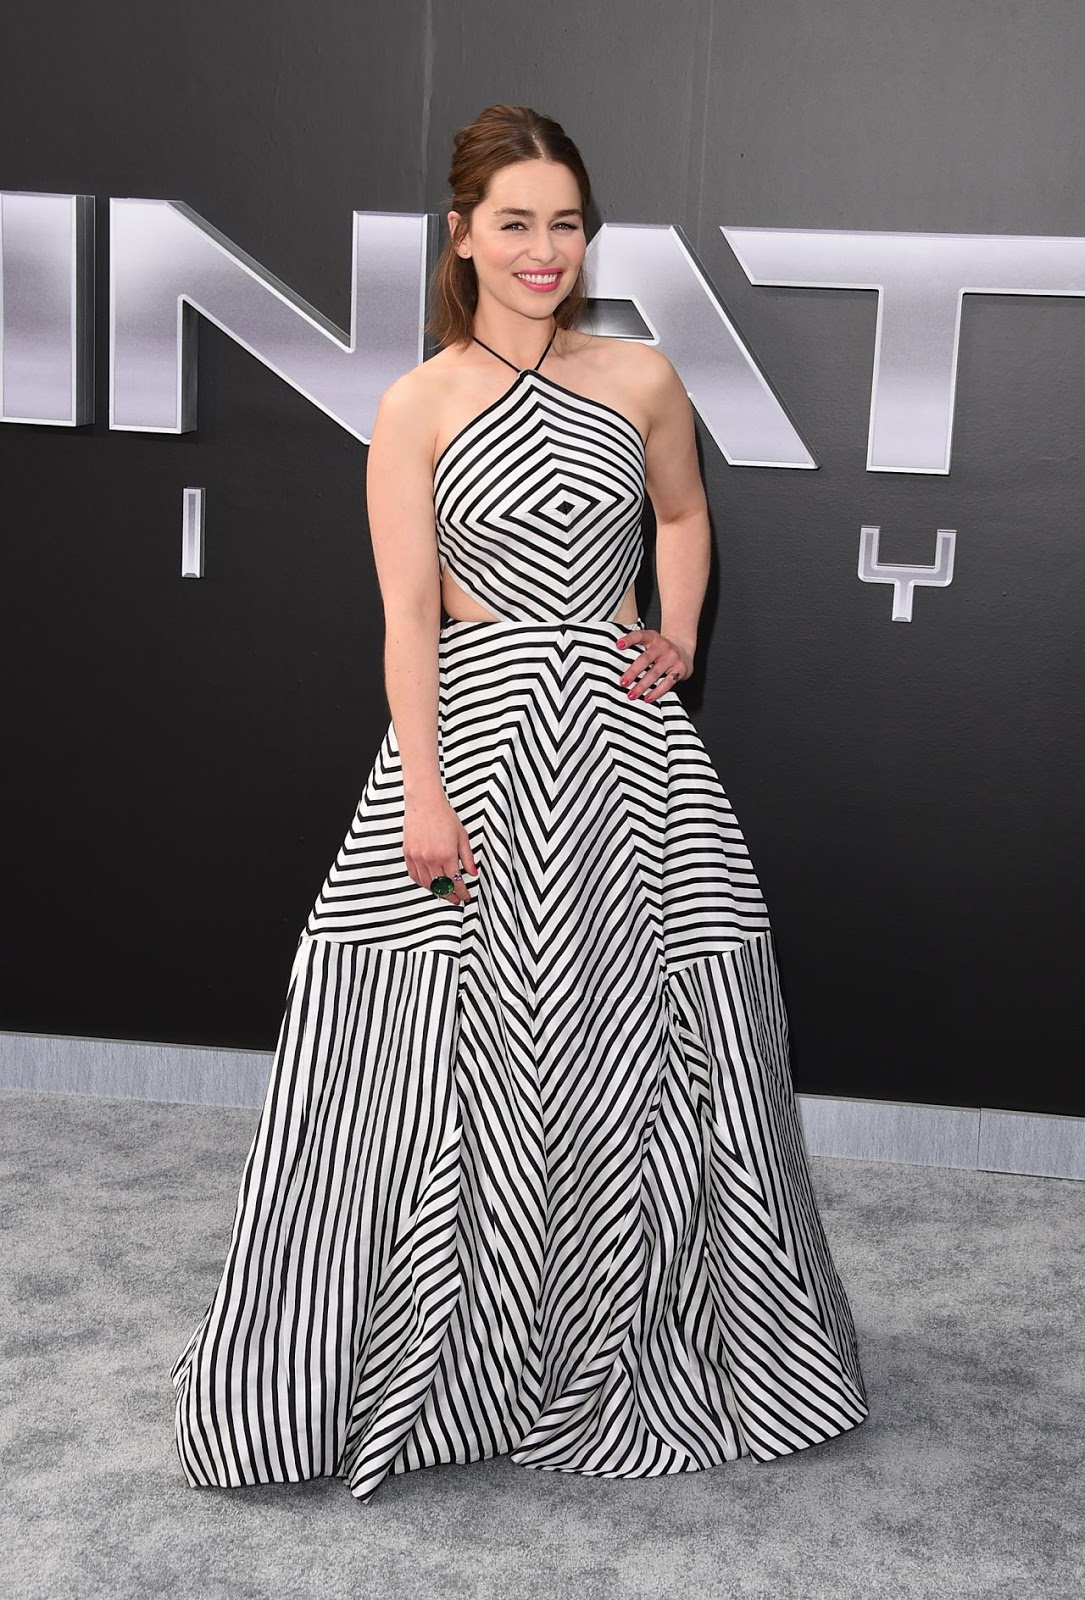 Emilia Clarke shows skin in a striped dress at the 'Terminator Genisys' Hollywood premiere